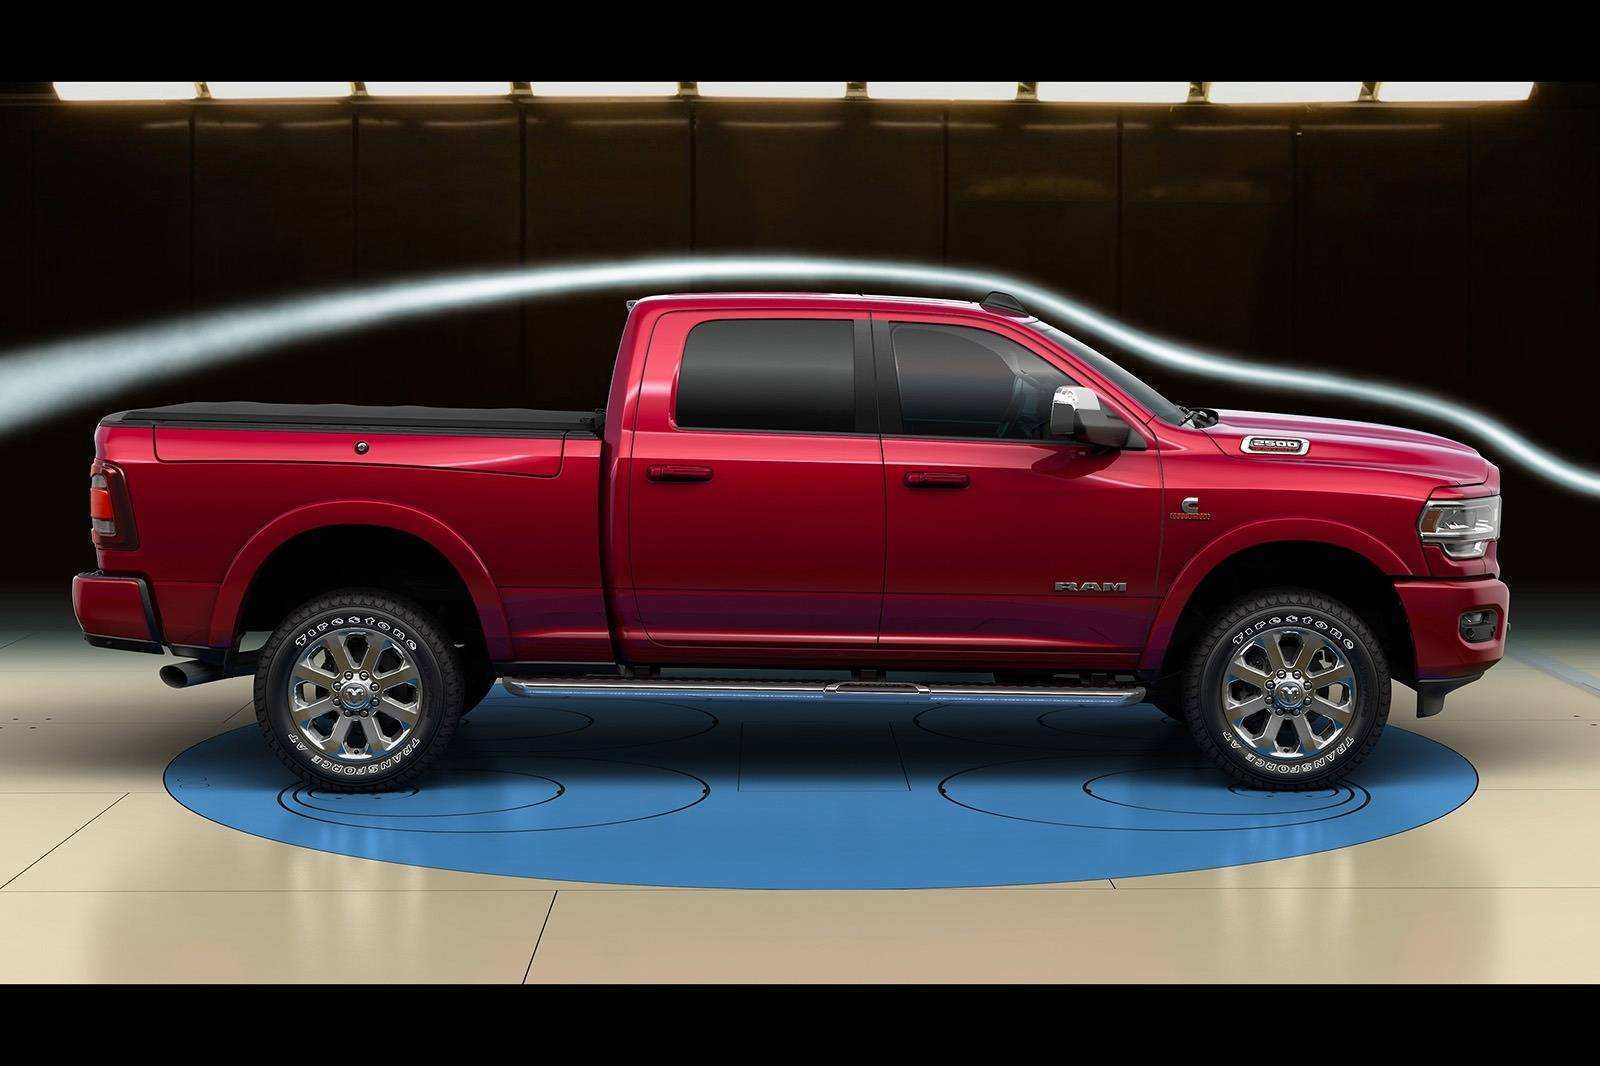 49 The Best 2019 Ram 2500 Diesel Photos